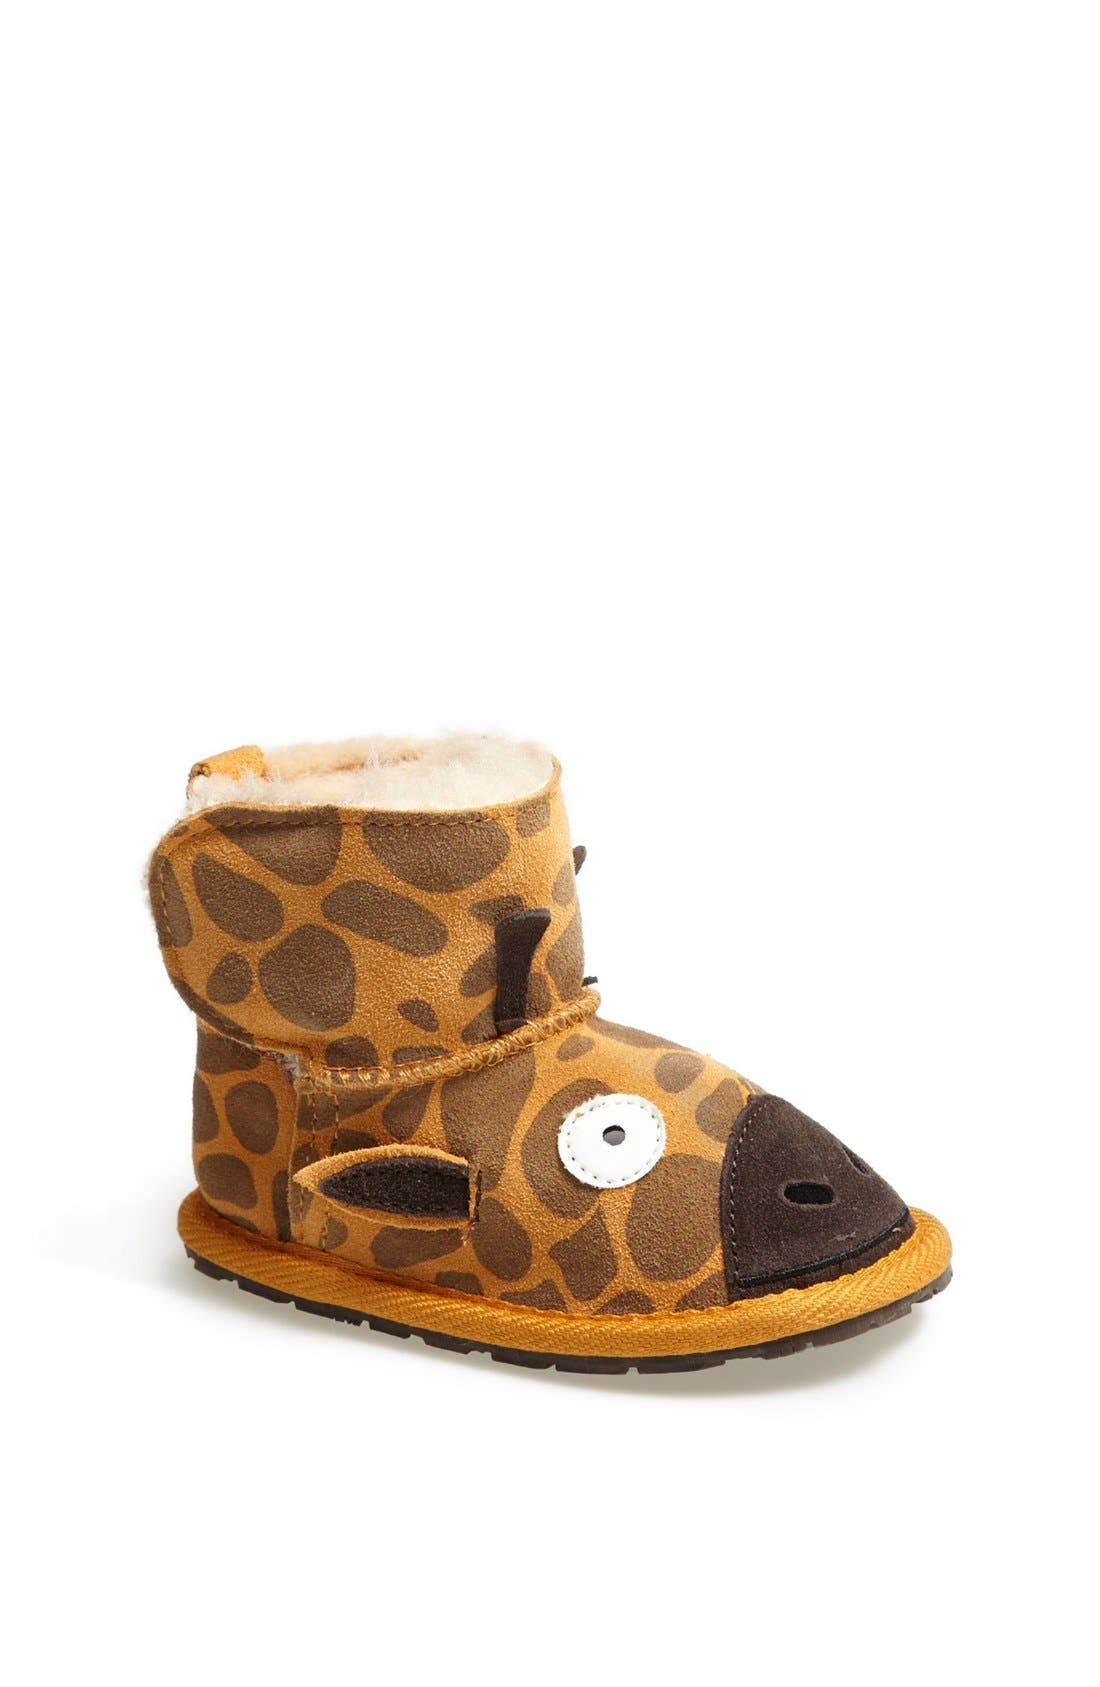 Alternate Image 1 Selected - EMU Australia 'Little Creatures - Giraffe' Boot (Baby & Walker)